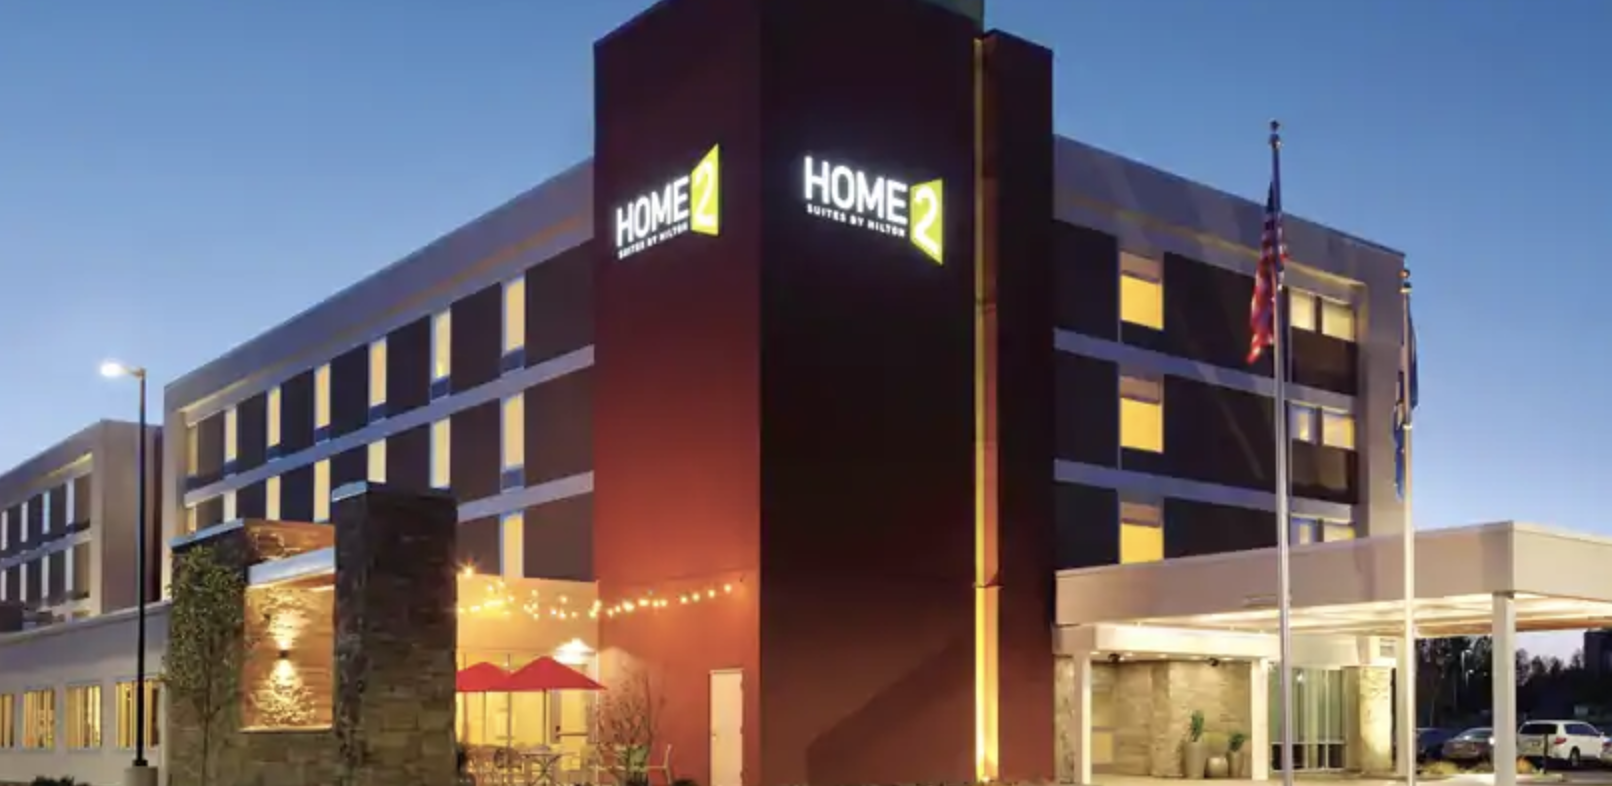 Home2 Suites 2.png